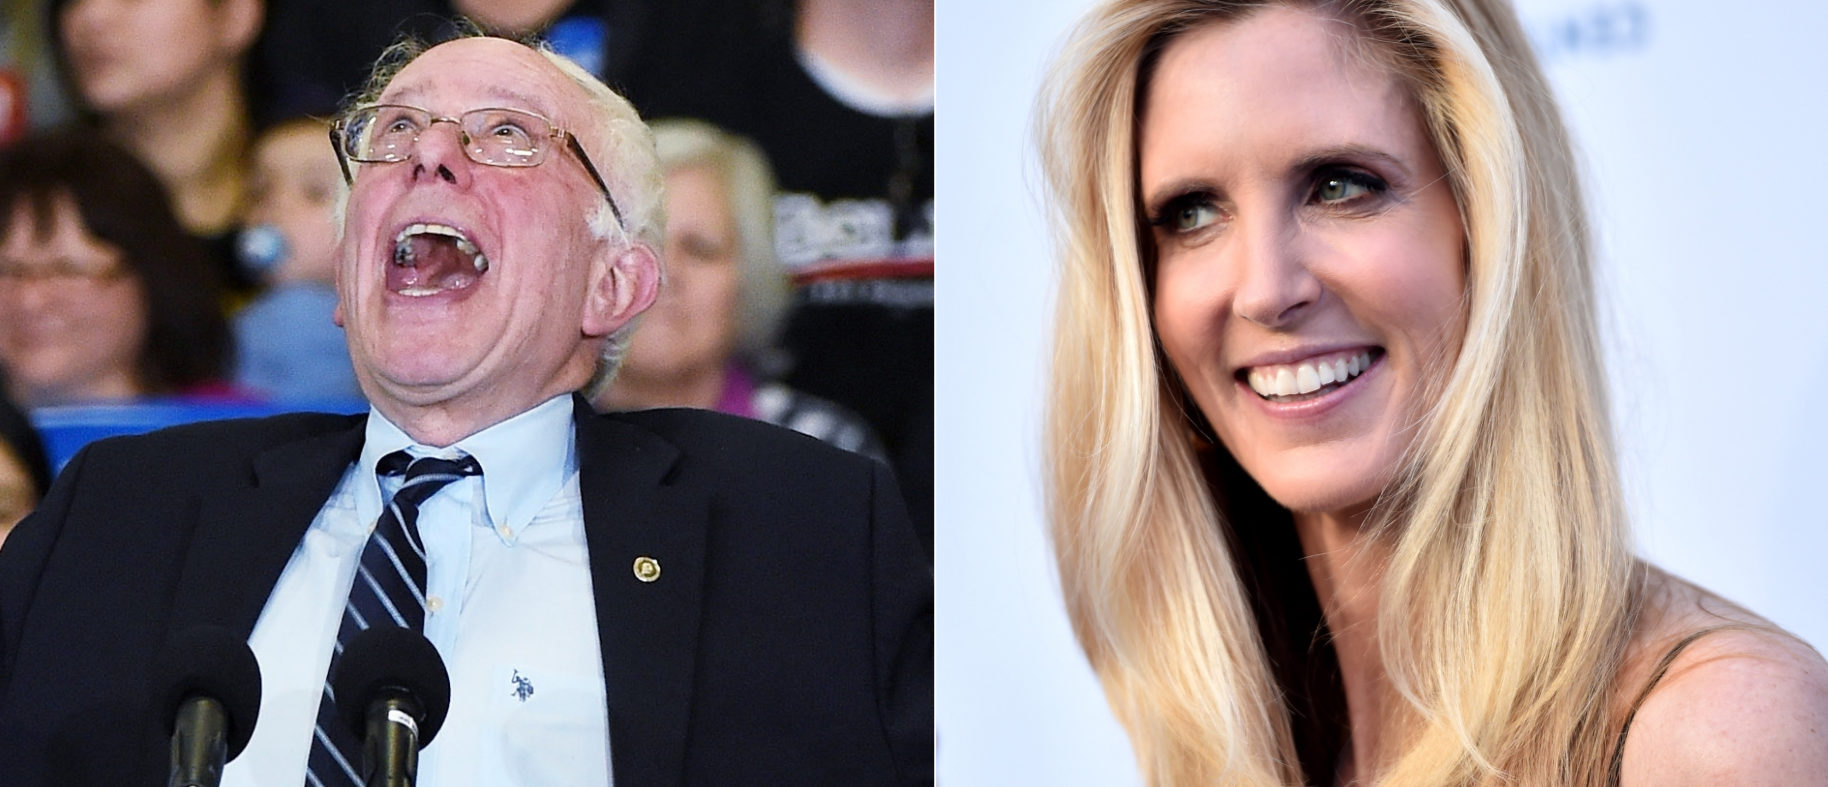 Ann Coulter and Bernie Sanders side-by-side/ Getty Images collage